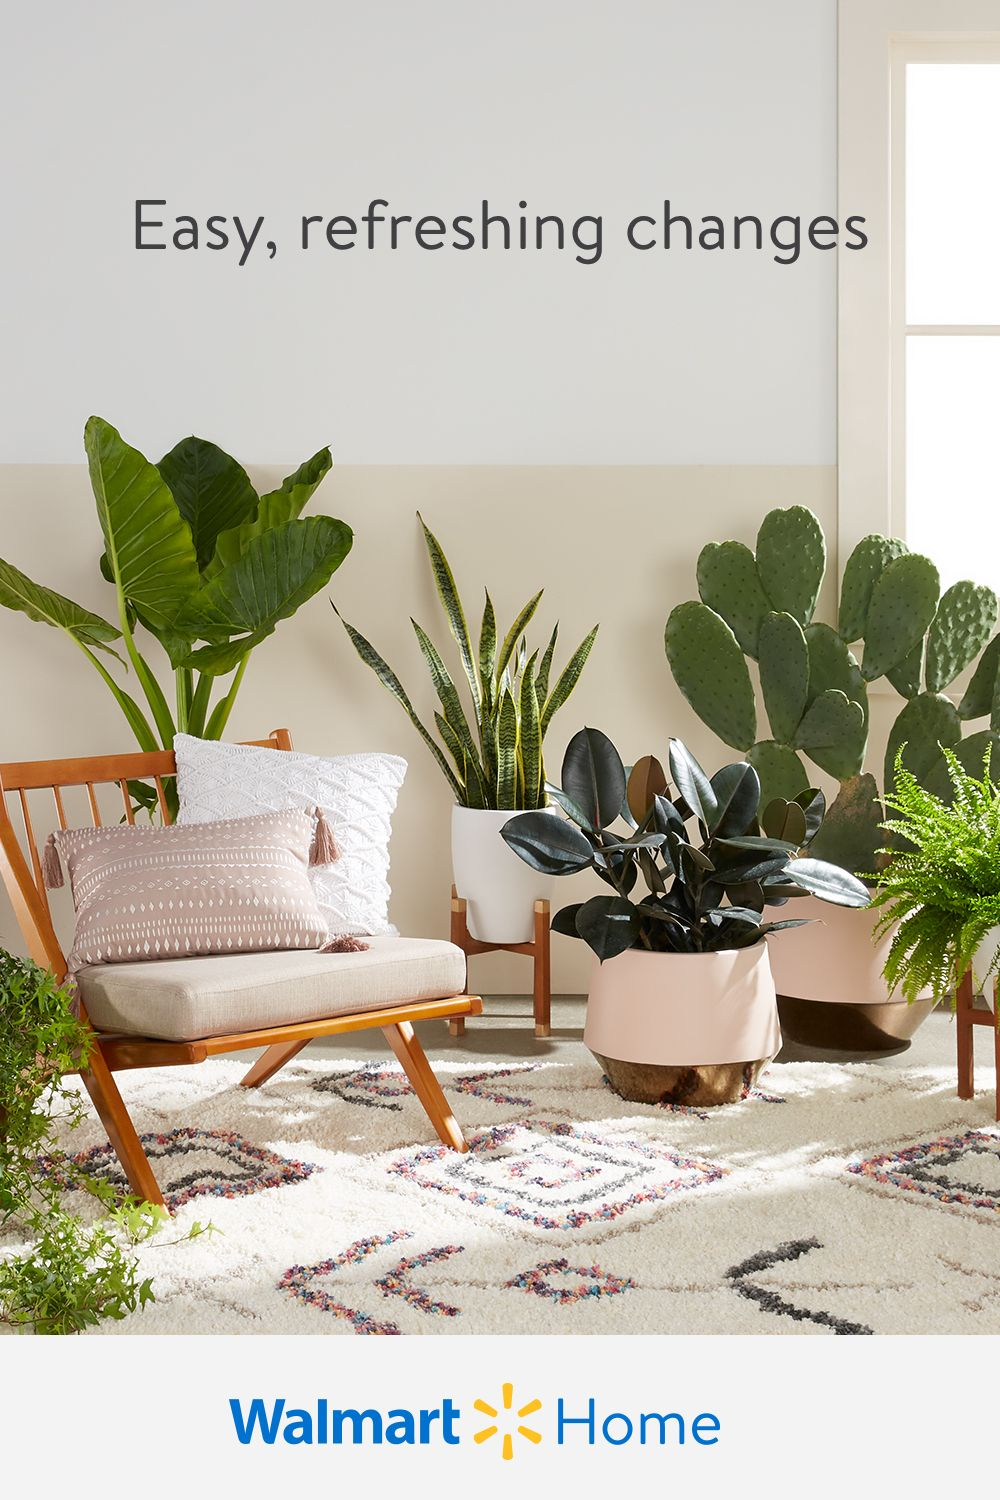 Rejuvenate every room in your home for the new year.  At Walmart, find easy, affordable ways to update your home with greenery, nature-inspired decor, & more.  Tip: Add plants for thriving color & texture, plus they can help purify the air.